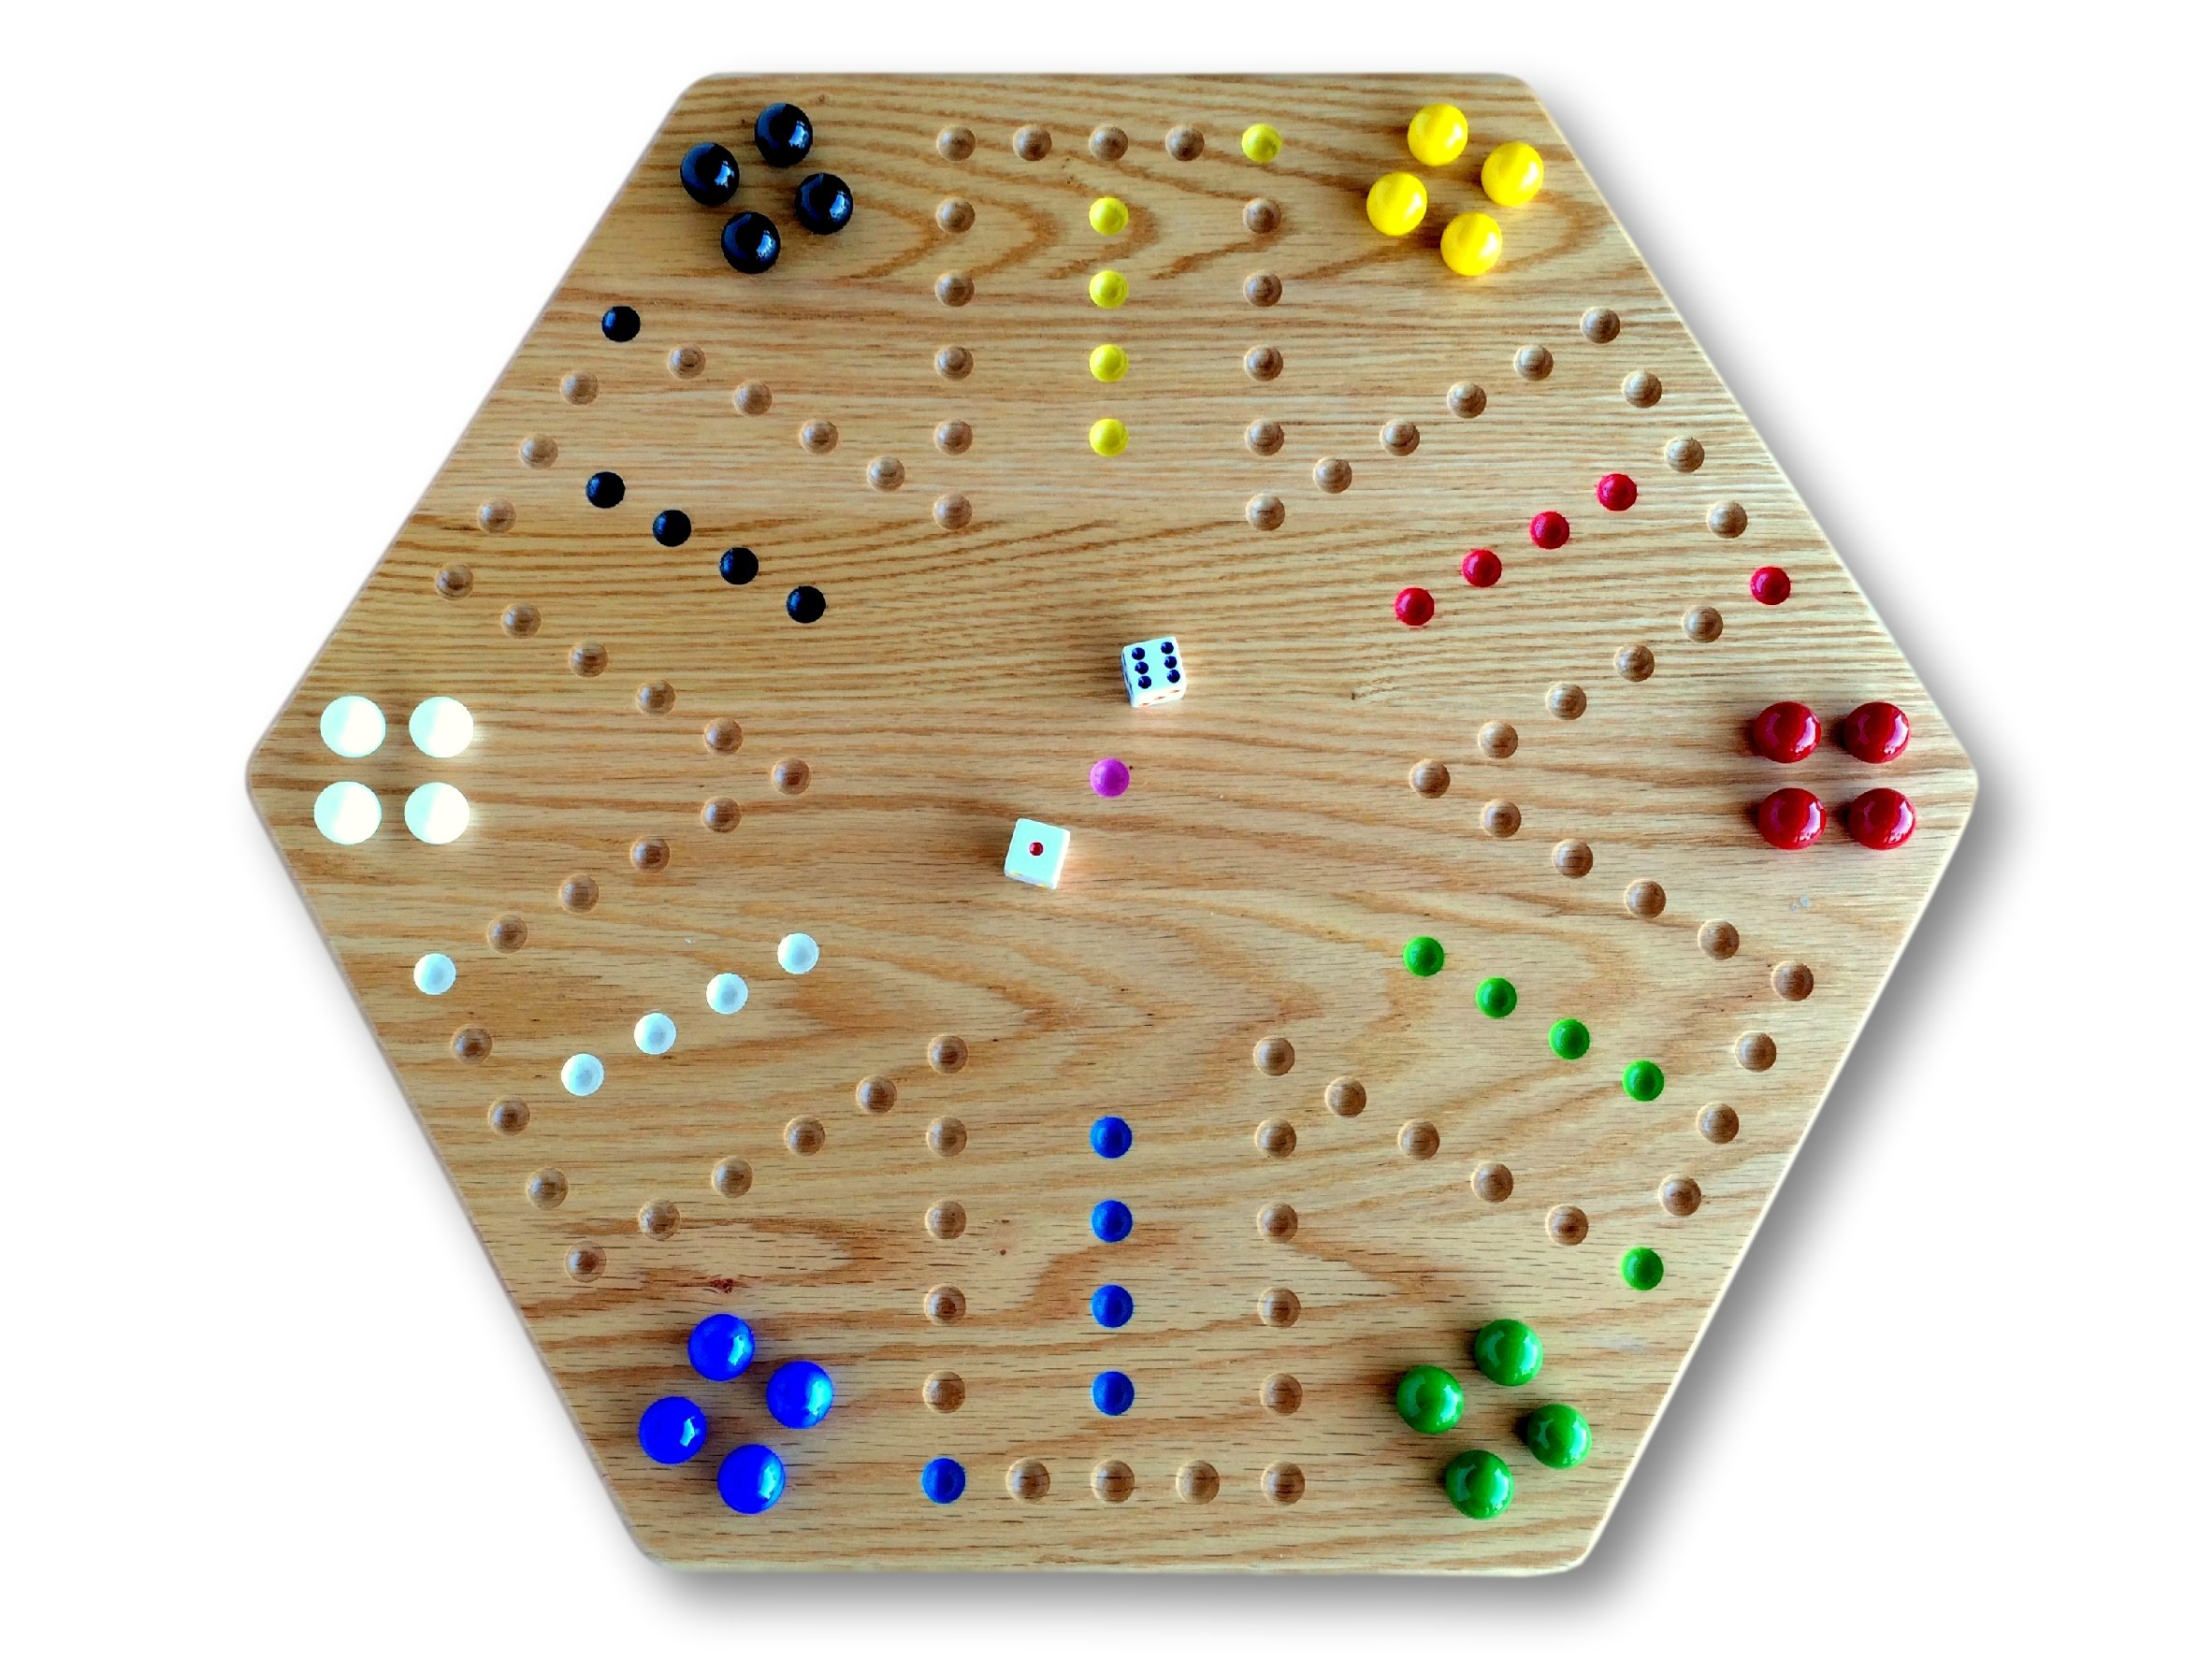 Oak Hand-Painted 20'' Wooden Aggravation Game Board, Double-Sided